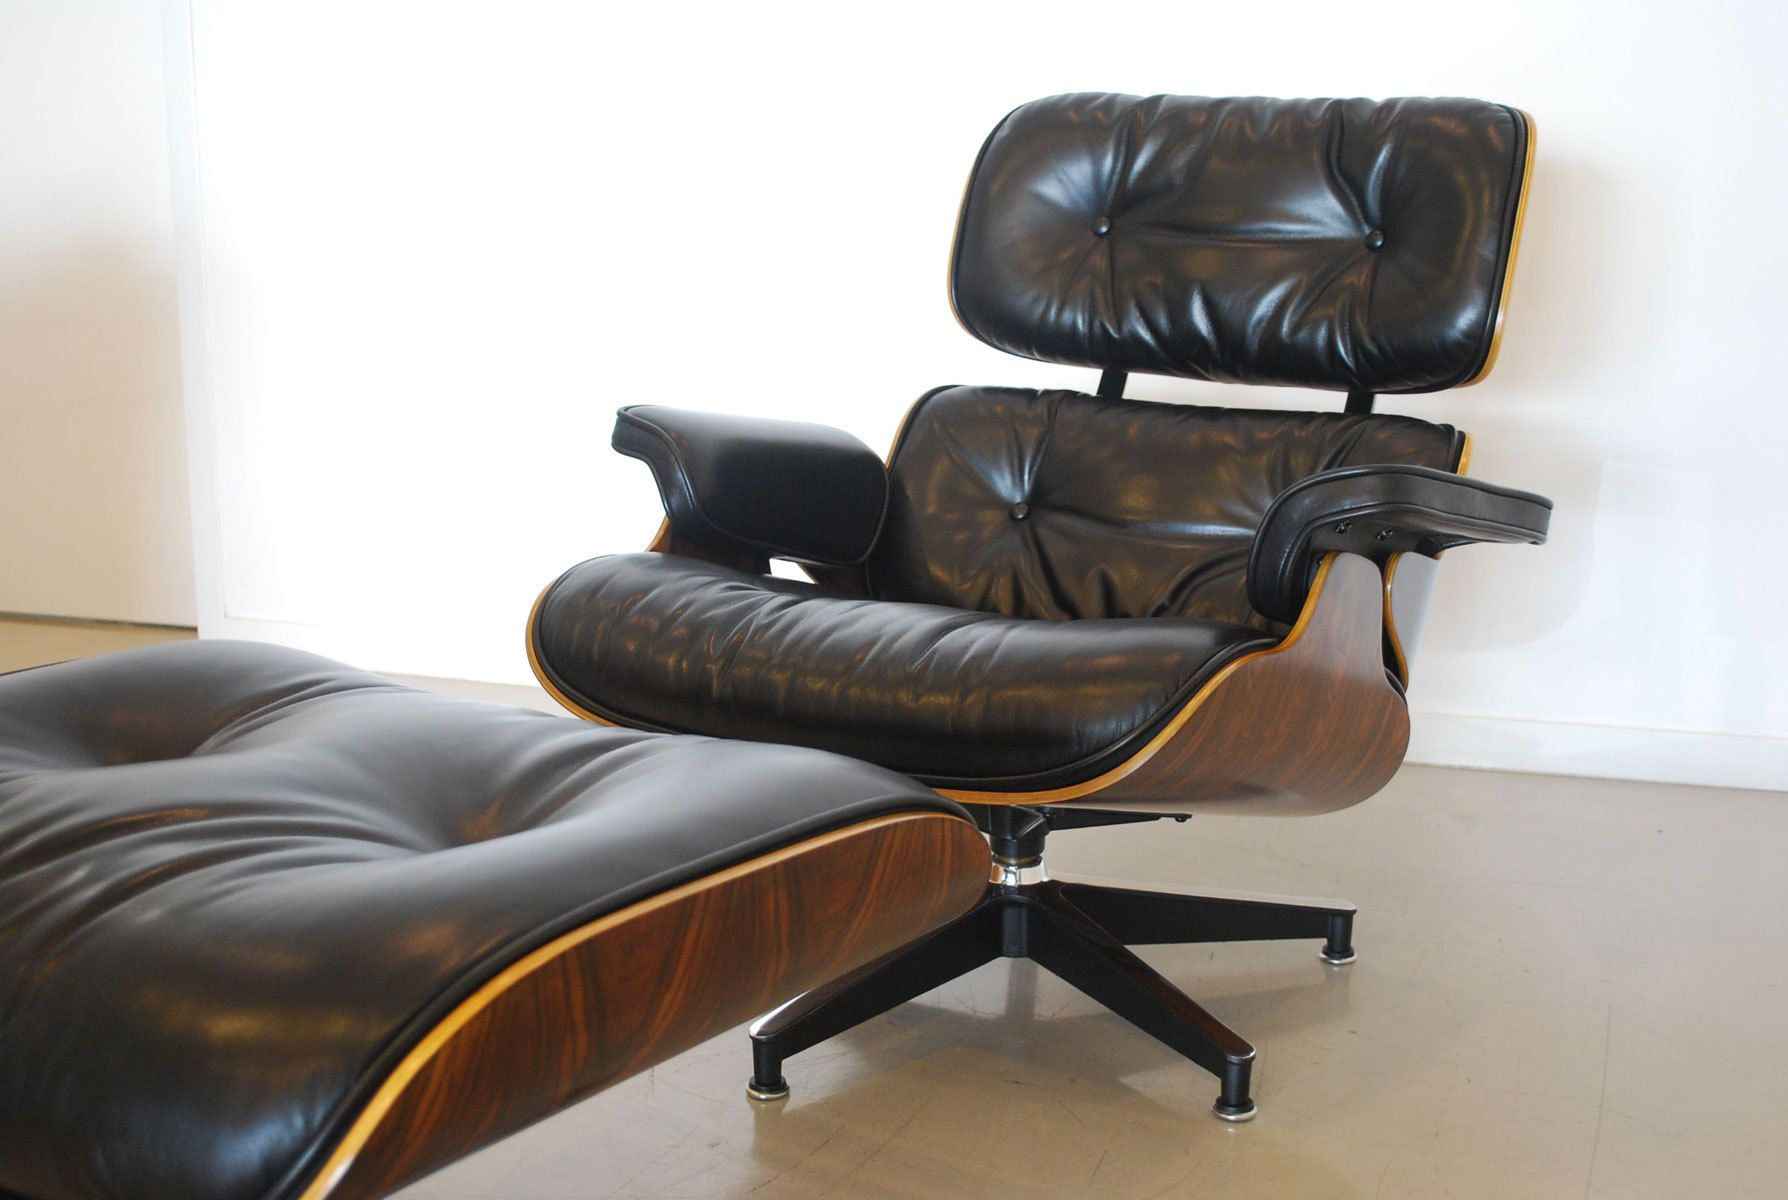 herman miller lounge chair. Herman Miller Eames Lounge Chair | Restoration/repair